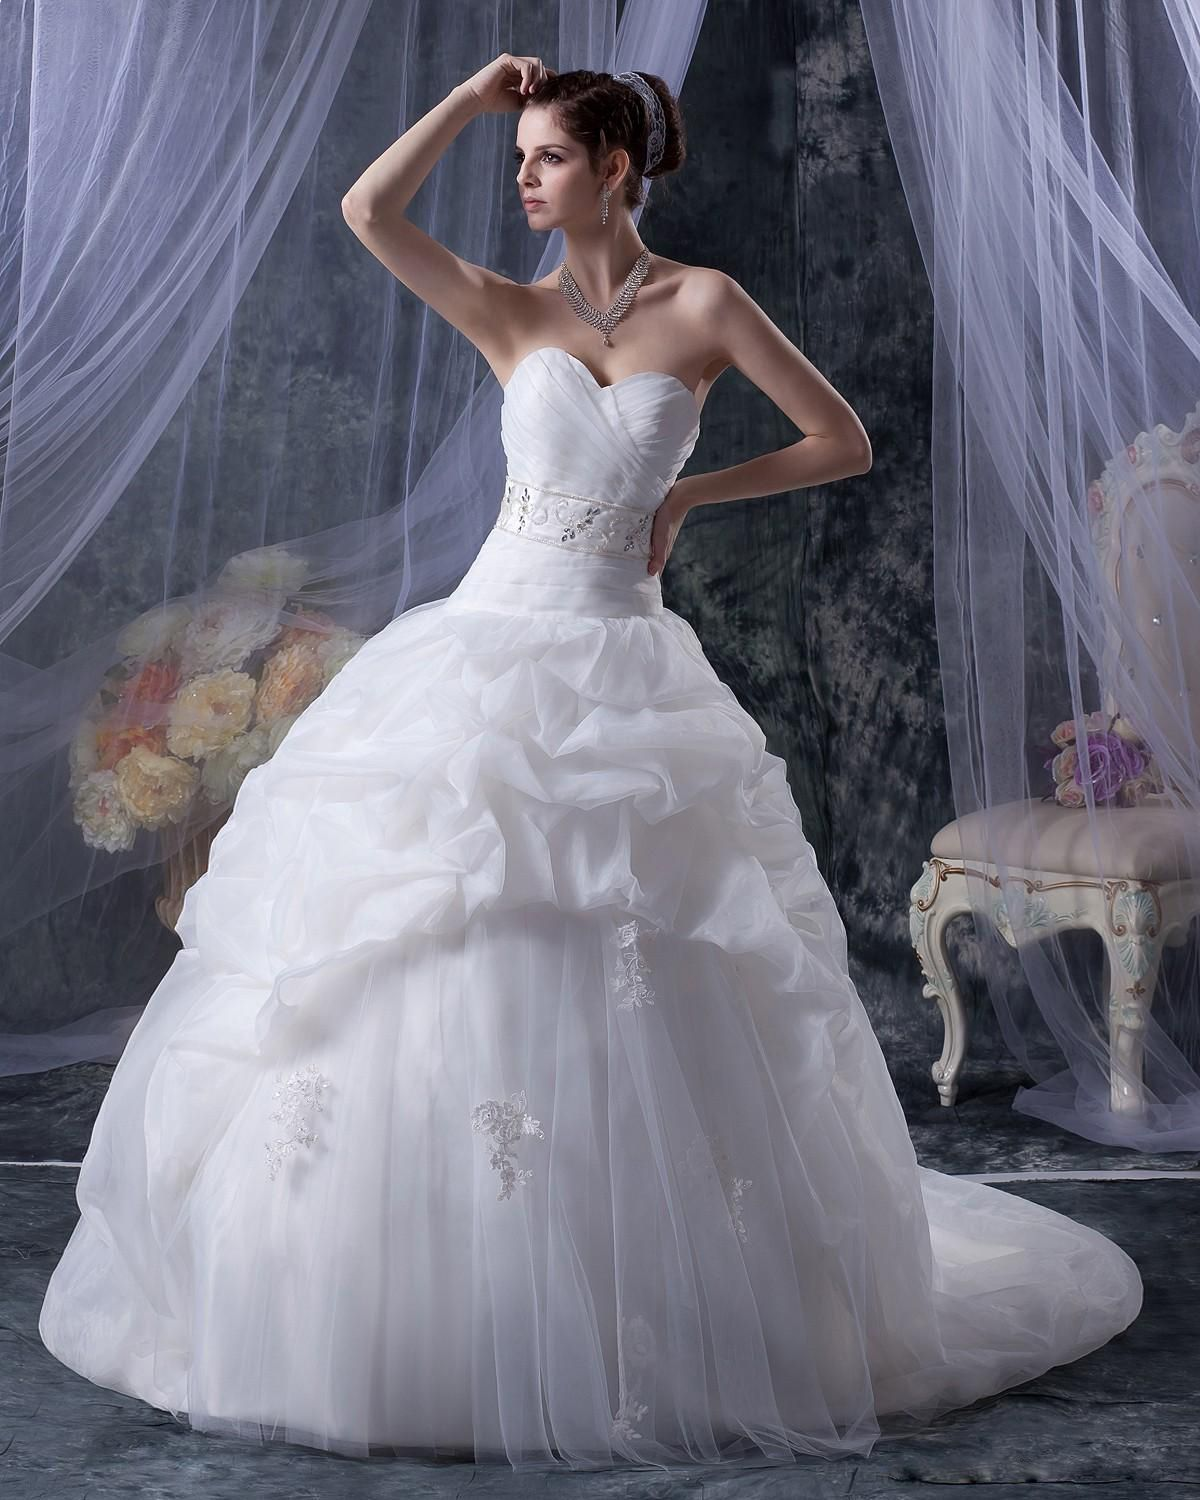 Best 25+ Ball Gown Wedding Ideas On Pinterest